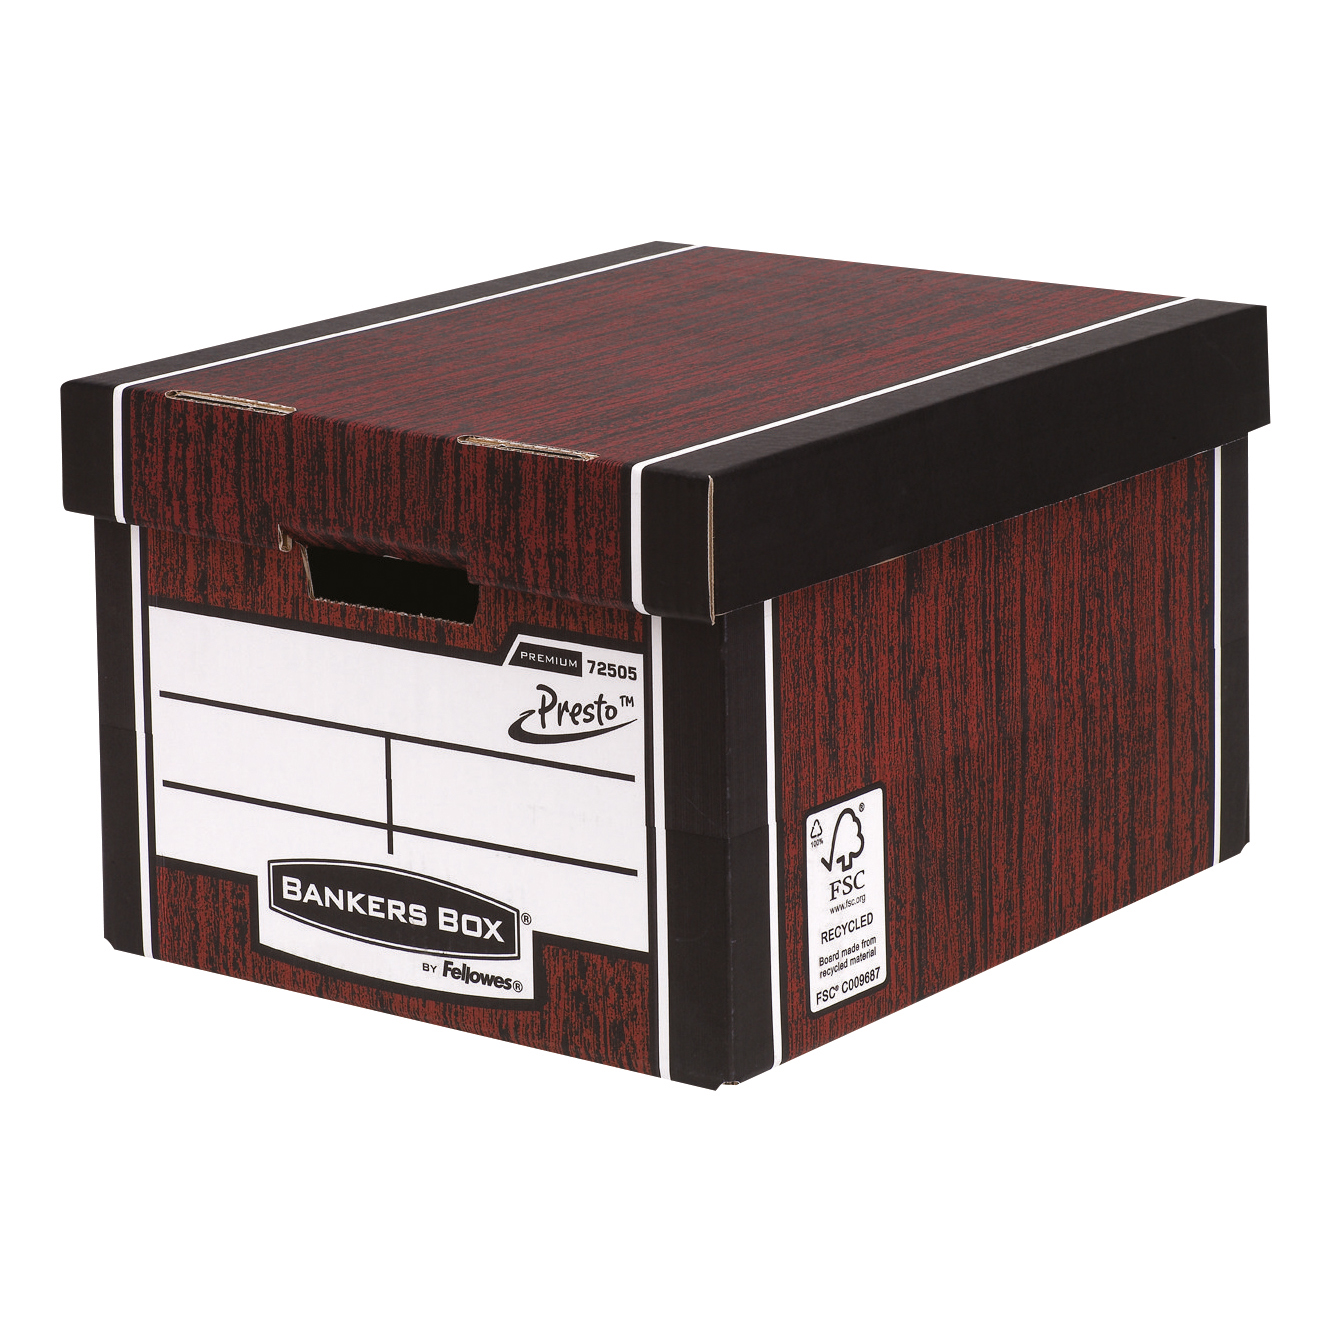 Bankers Box Premium Storage Box Presto Clsc W/grain FSC Ref7250503 Pack 12 12 for the price of 10